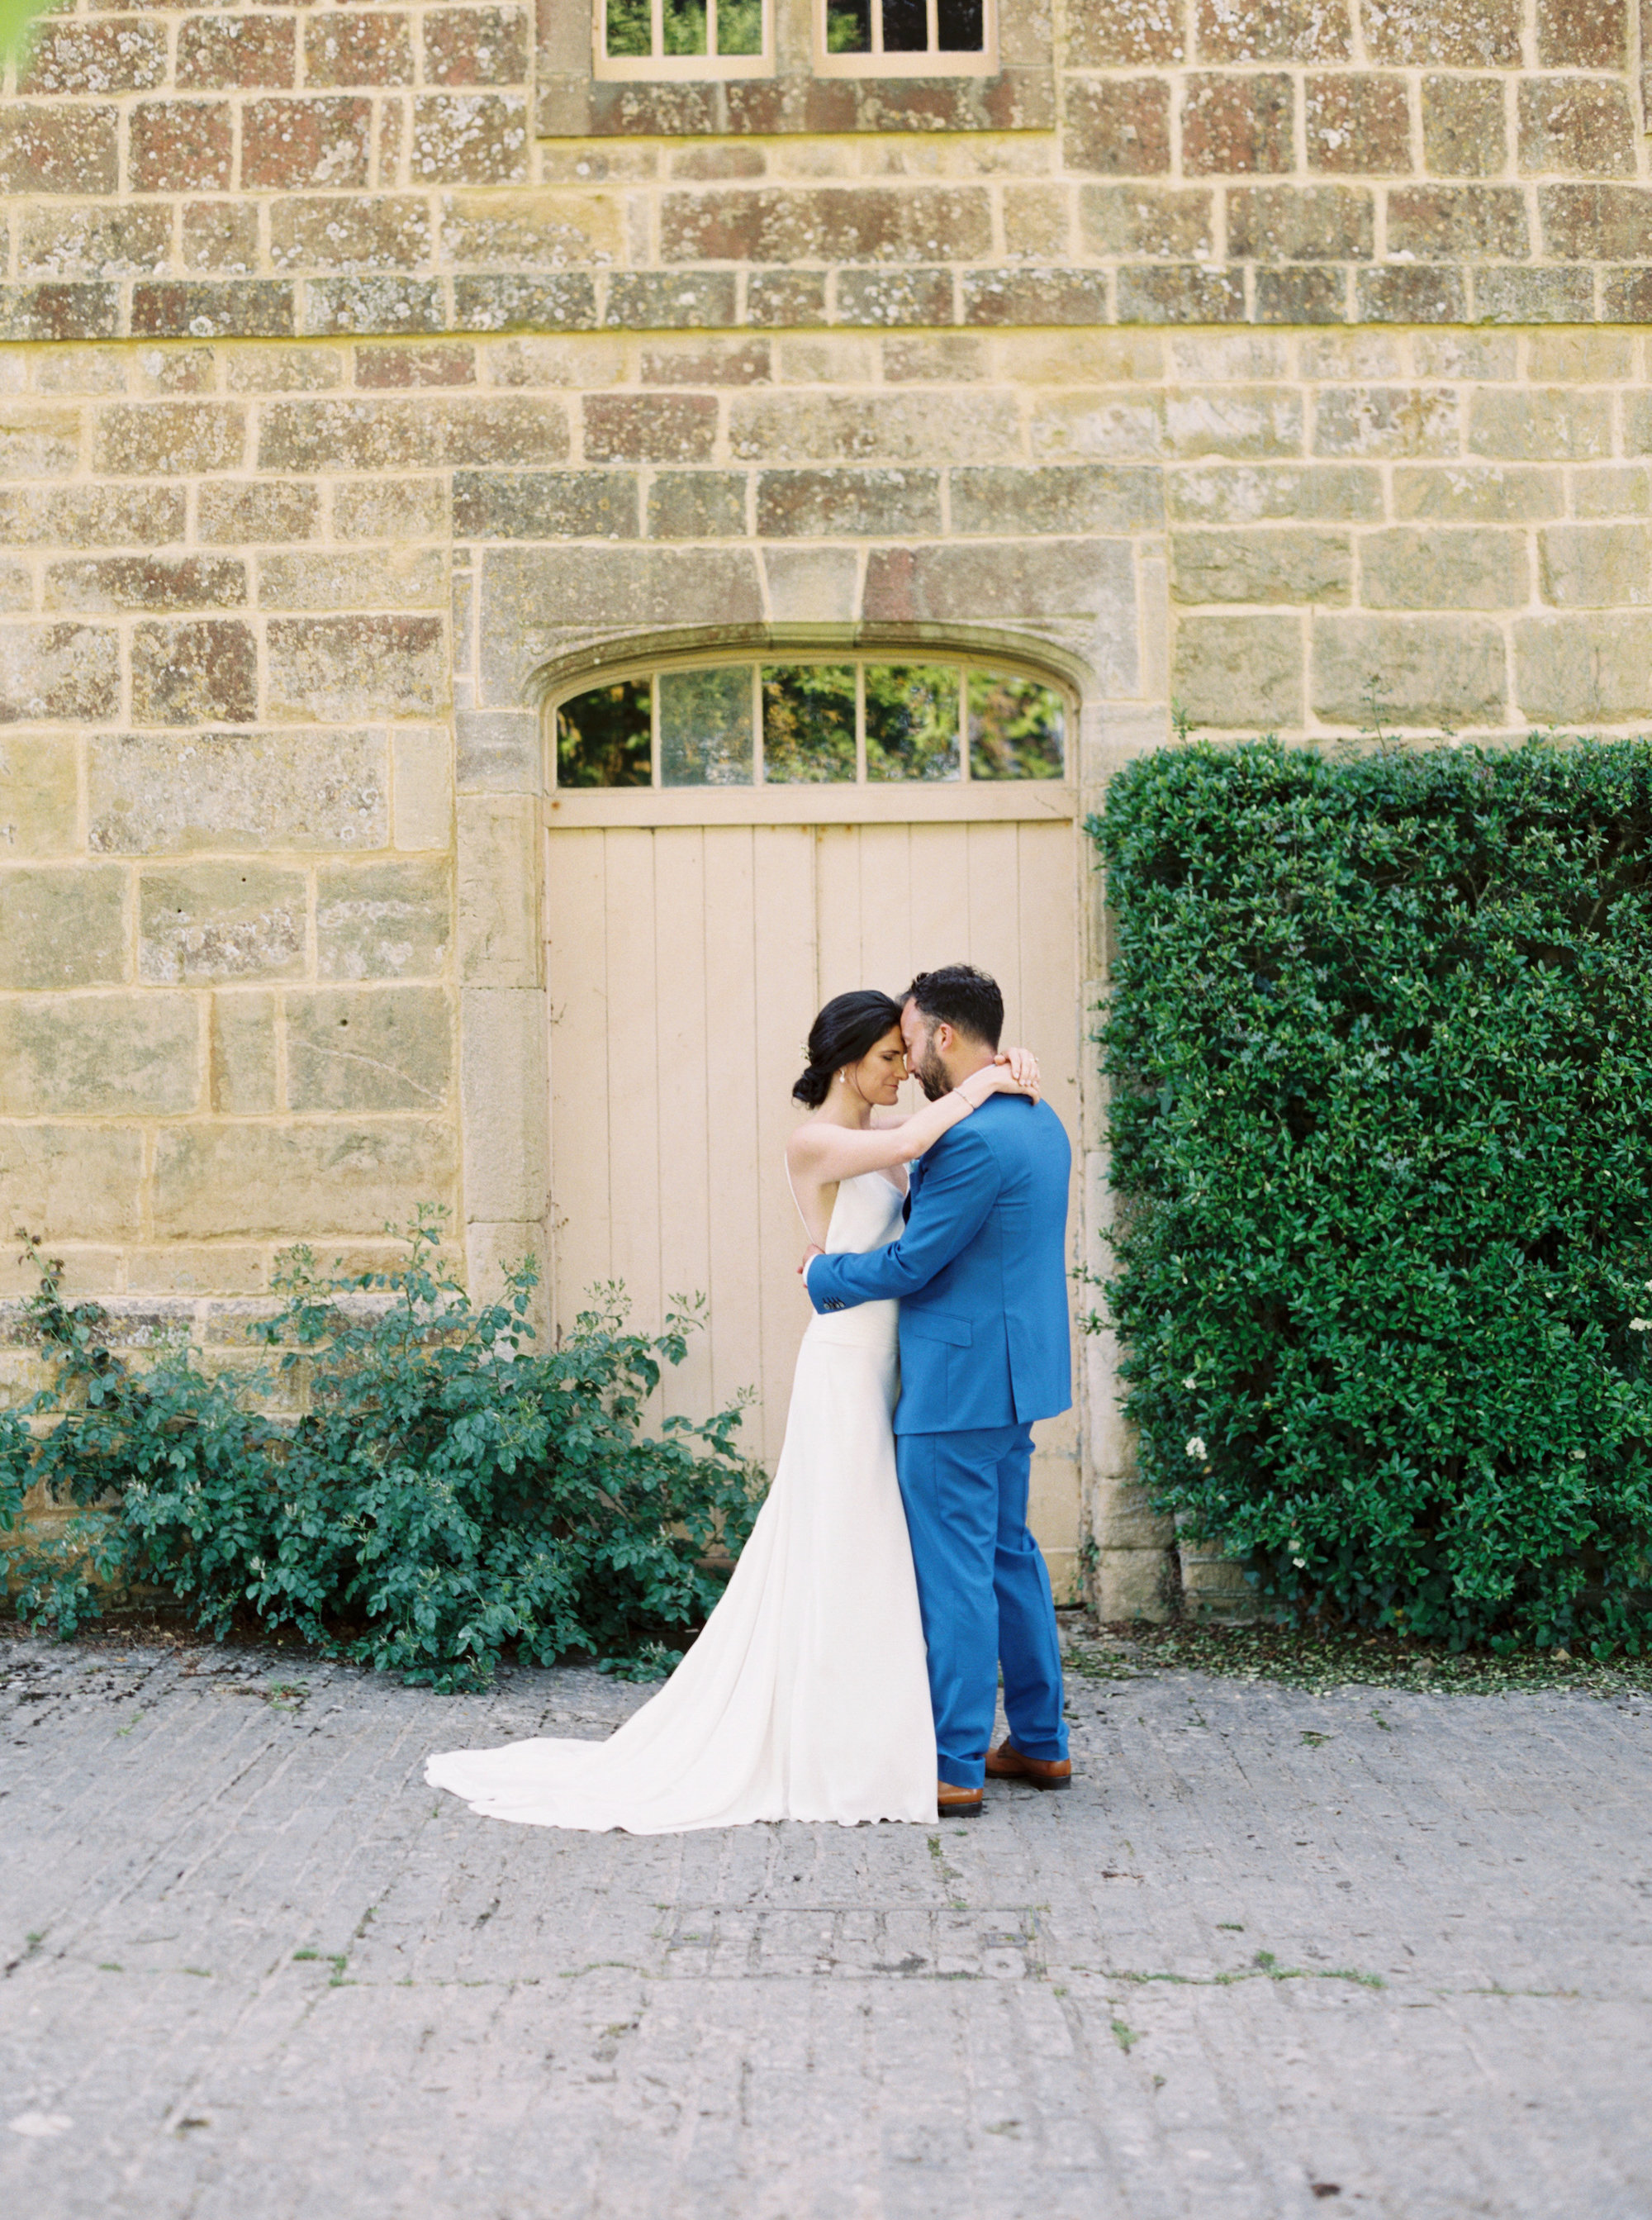 Luxury Wedding Planner UK | Jennifer & Timothy's English Country Manor Wedding | Soft Pink Pale Blue White and Silver Toned Green Neutral Tones American Bride North Cadbury Court | Nicole Colwell Photography  0012.jpg